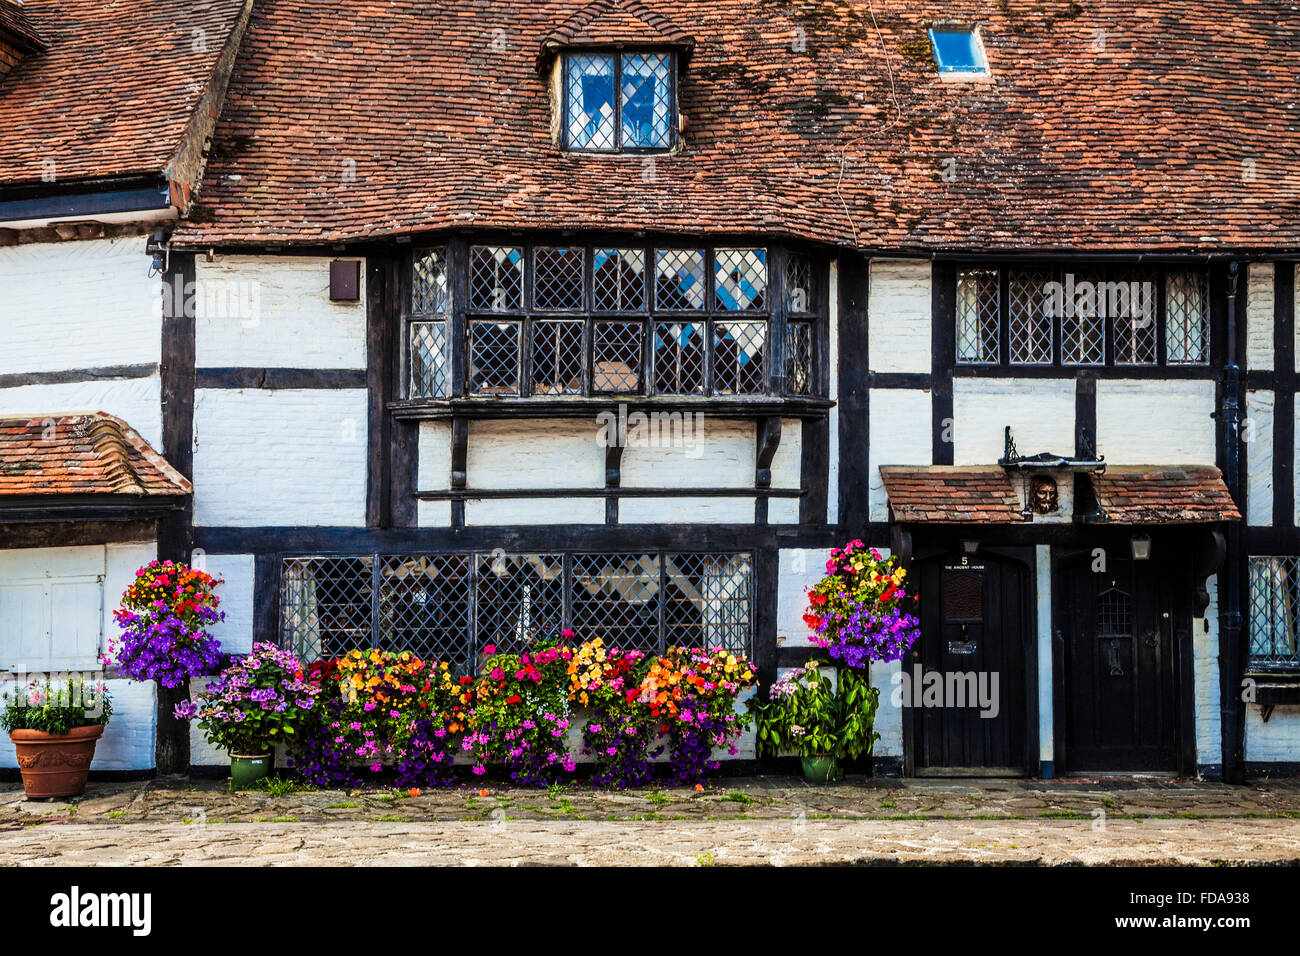 A half-timbered house in the pretty village of Biddenden in Kent. - Stock Image